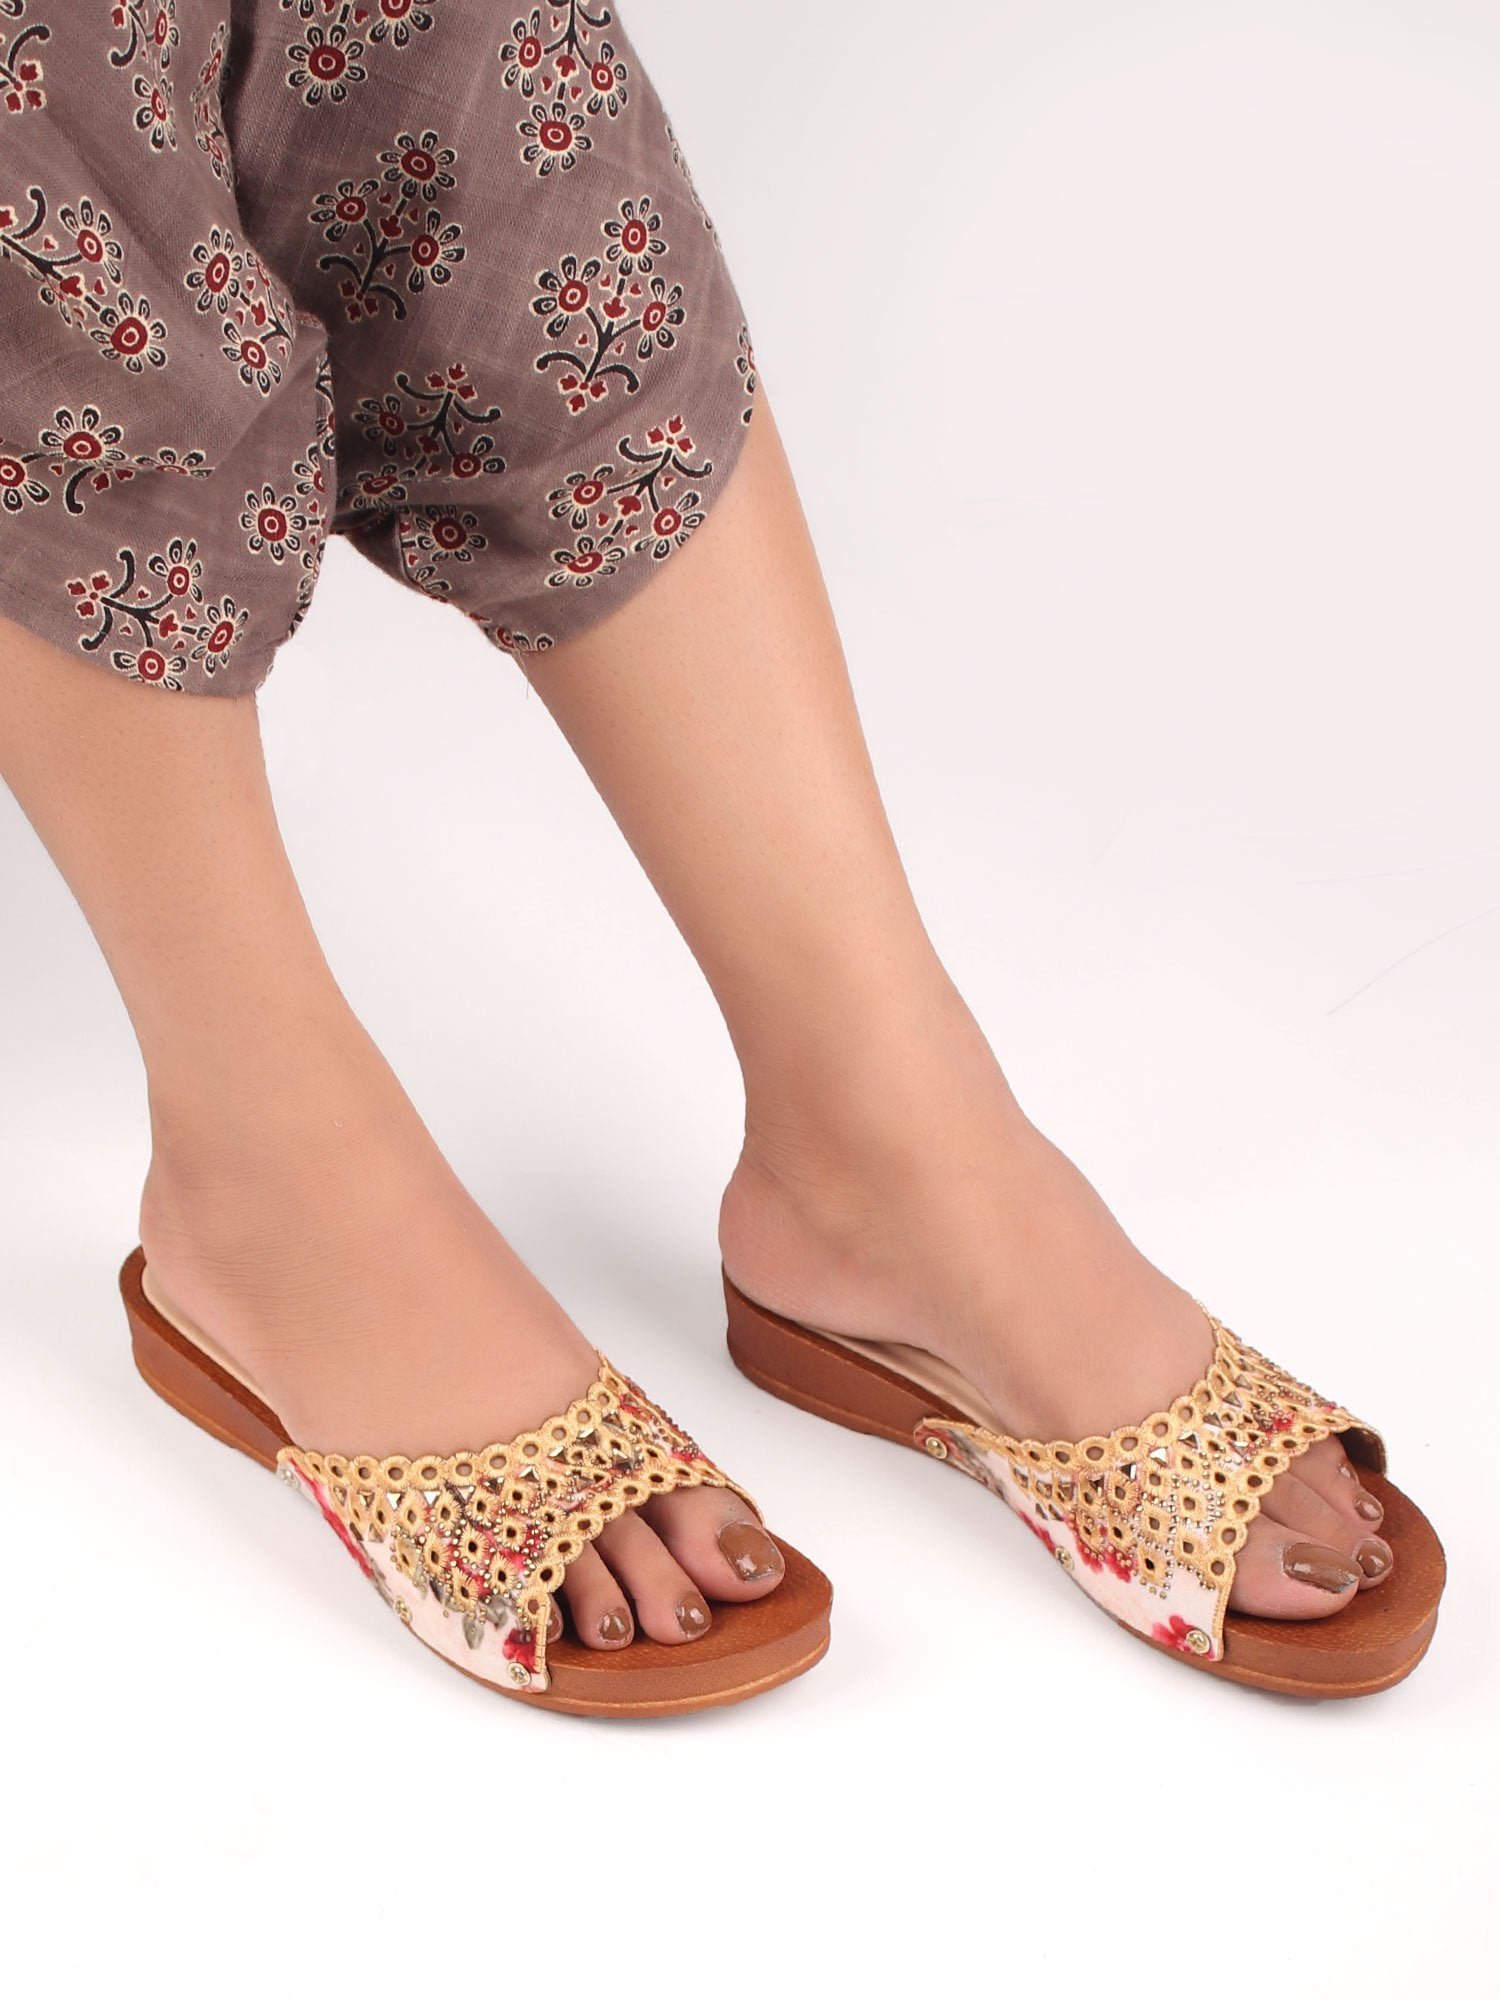 EMBROIDERED ELEGANCE SANDALS IN ORANGE